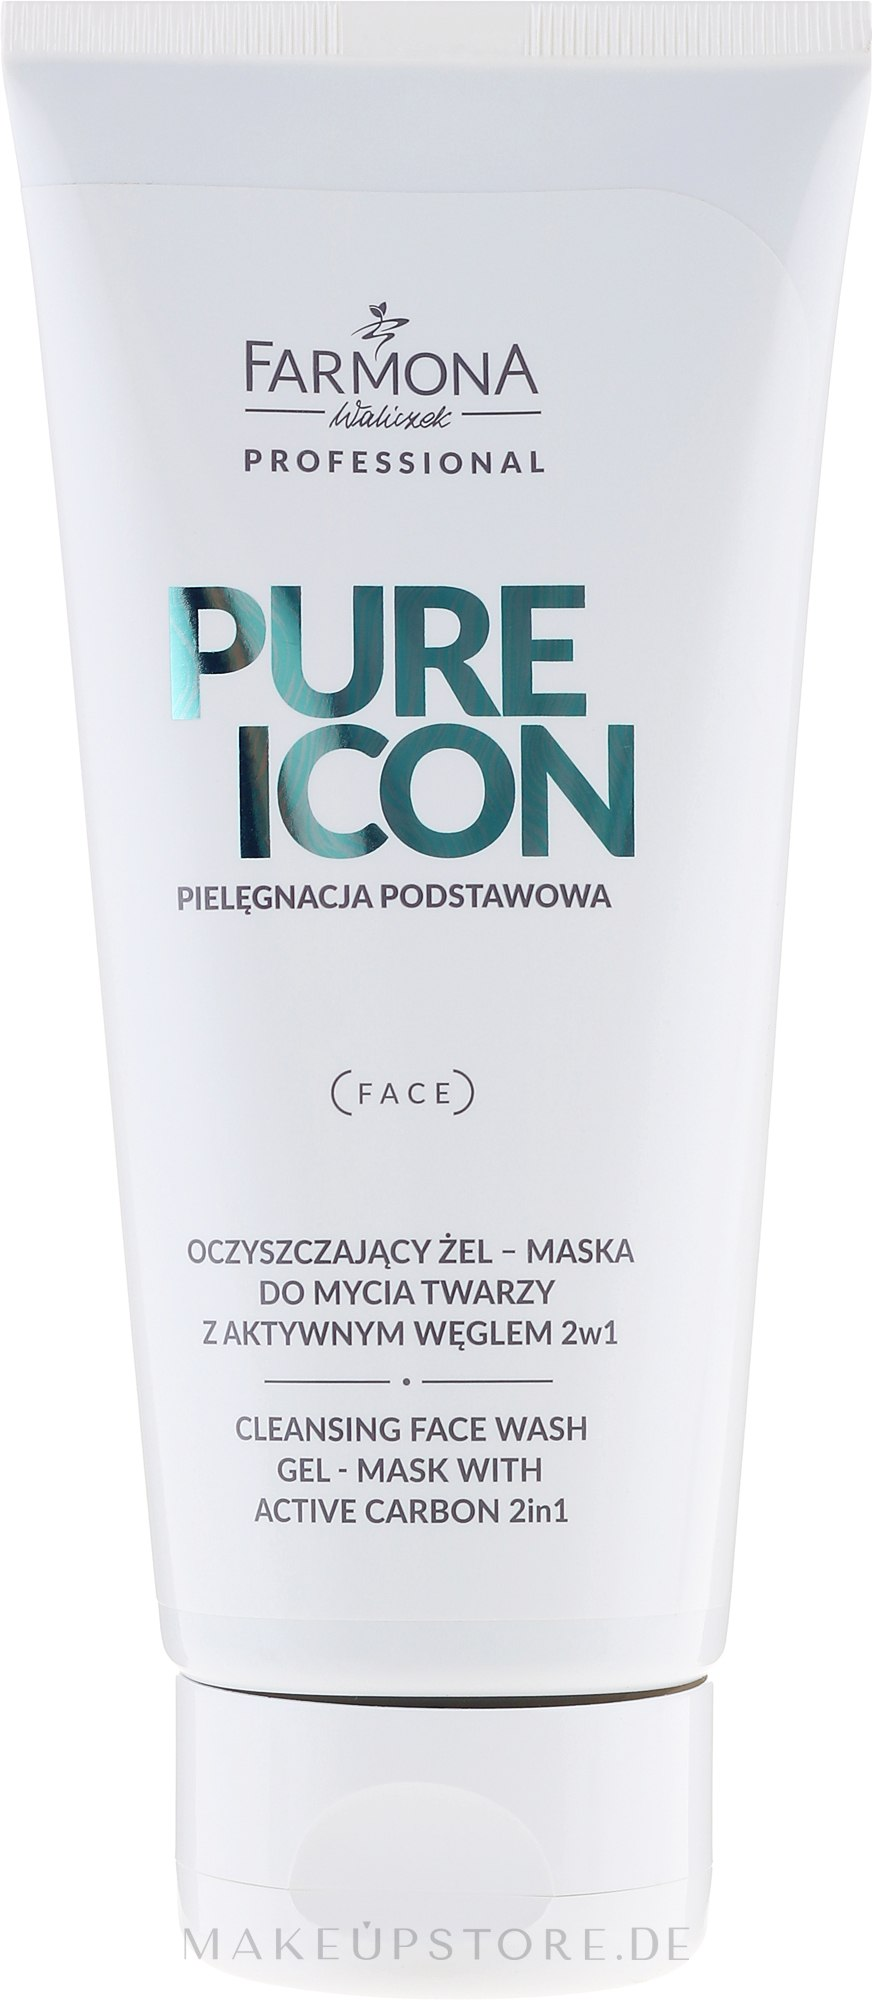 2in1 reinigende Gelmaske für das Gesicht mit Aktivkohle - Farmona Professional Pure Icon Cleansing Face Wash Gel-Mask — Bild 200 ml